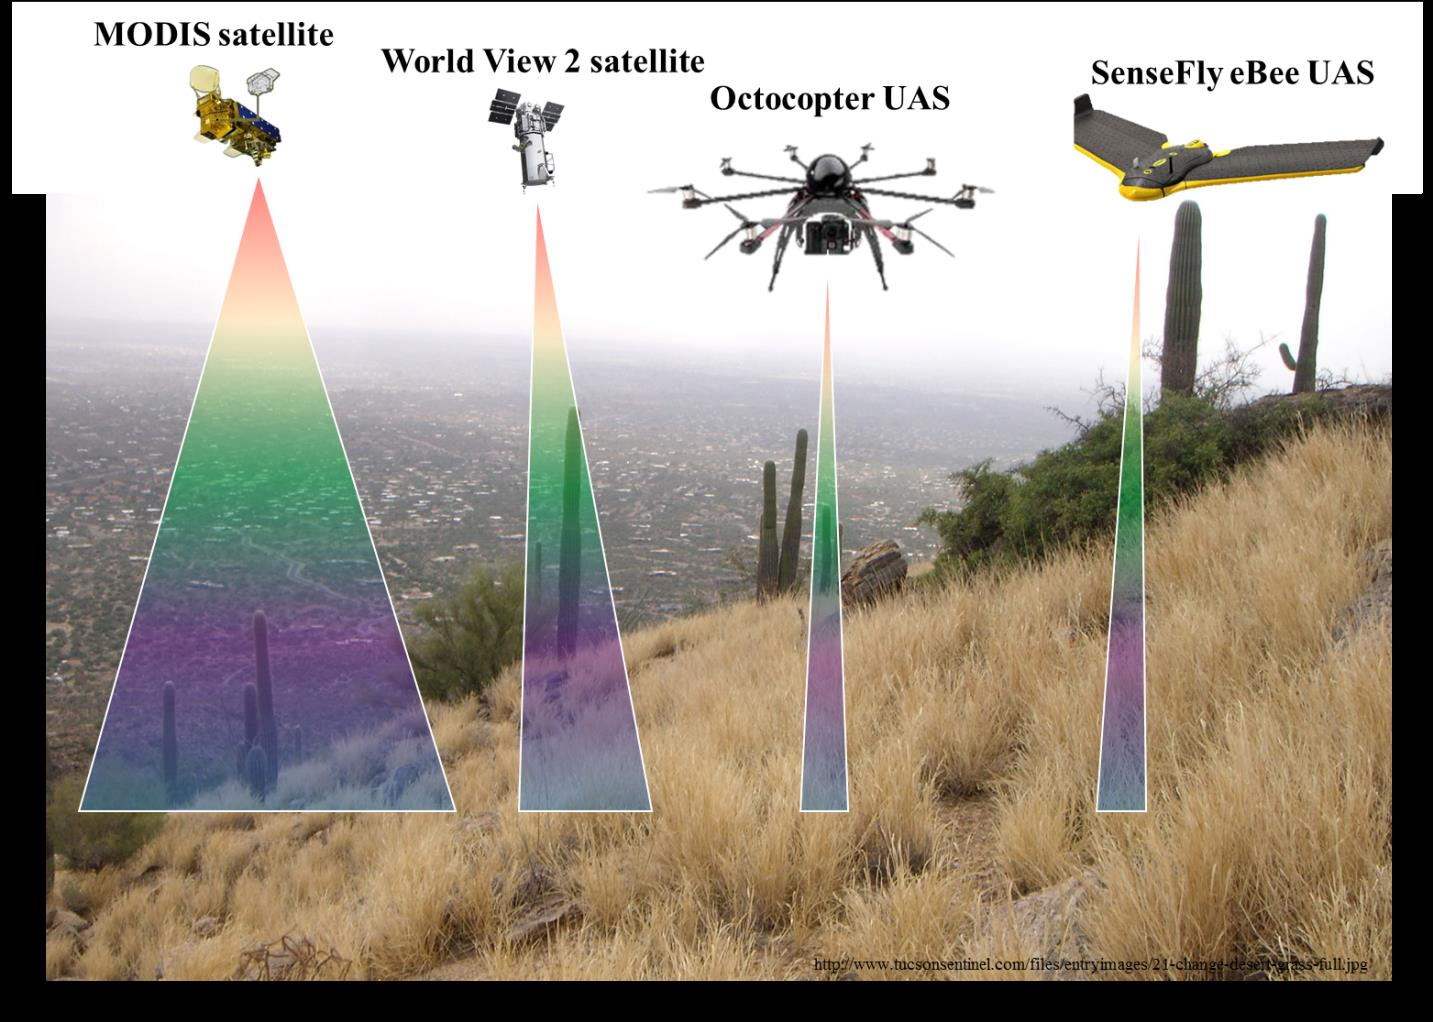 USGS and NAU scientists are developing a hierarchical, multi-sensor approach to detect buffelgrass at different spatial scales. Scientists are leveraging coarse- and fine-resolution satellite imagery (from MODIS and WorldView-2, respectively) and much finer resolution data from the UAS platforms shown here that carry sensors to acquire multispectral, hyperspectral, photogrammetric, and lidar measurements of vegetation, soil, and topography.